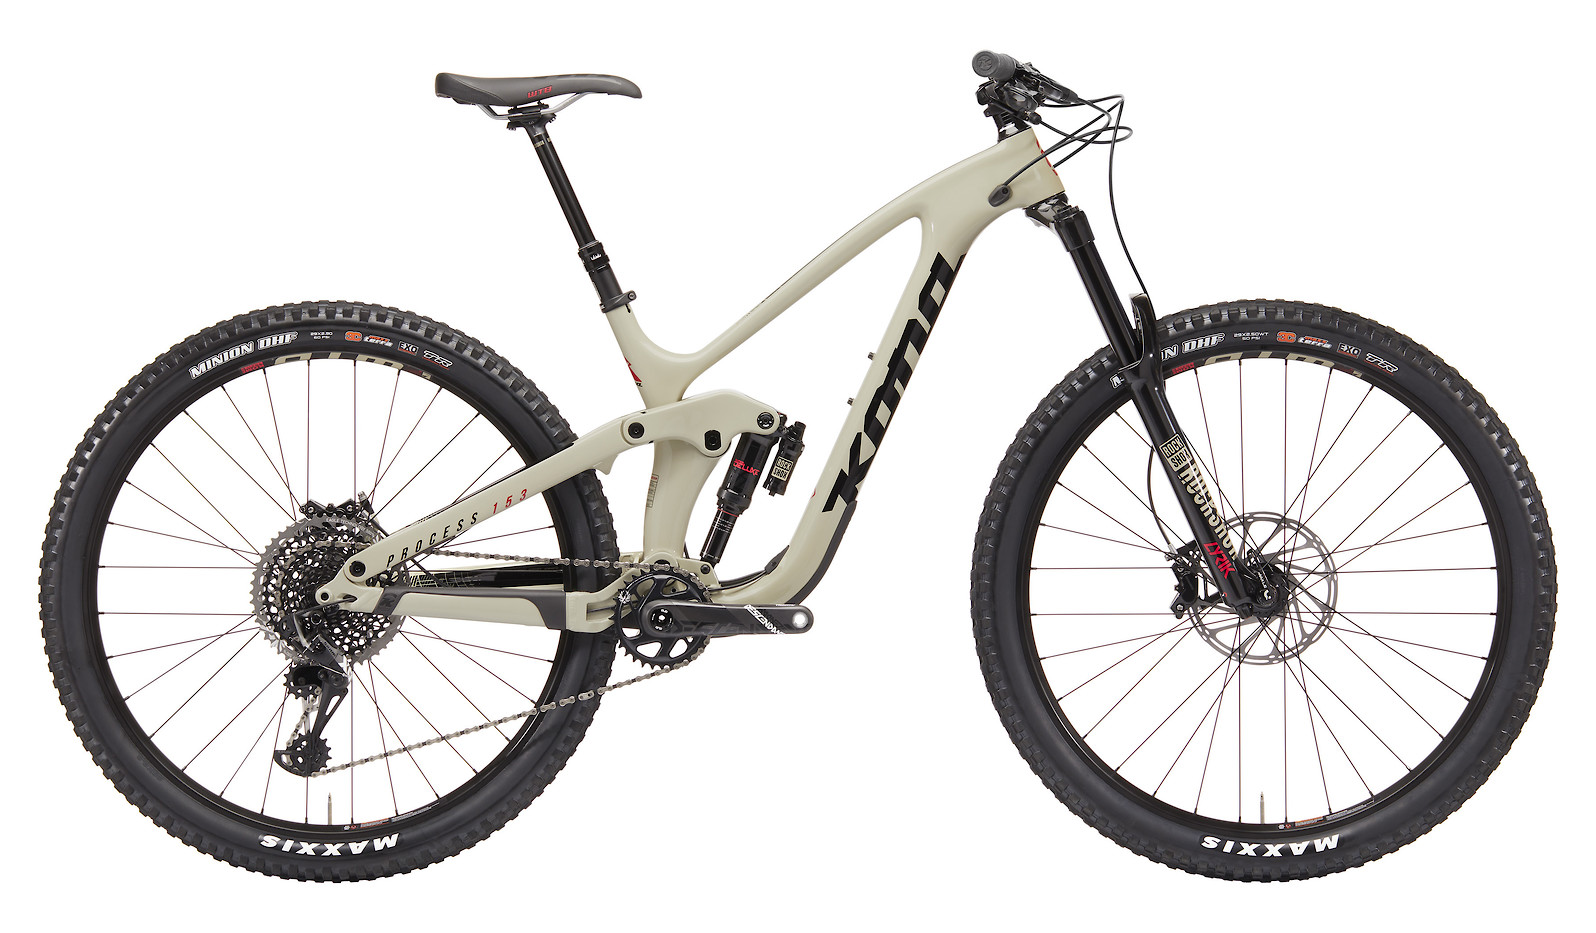 2019 Kona Process 153 CR/DL 29